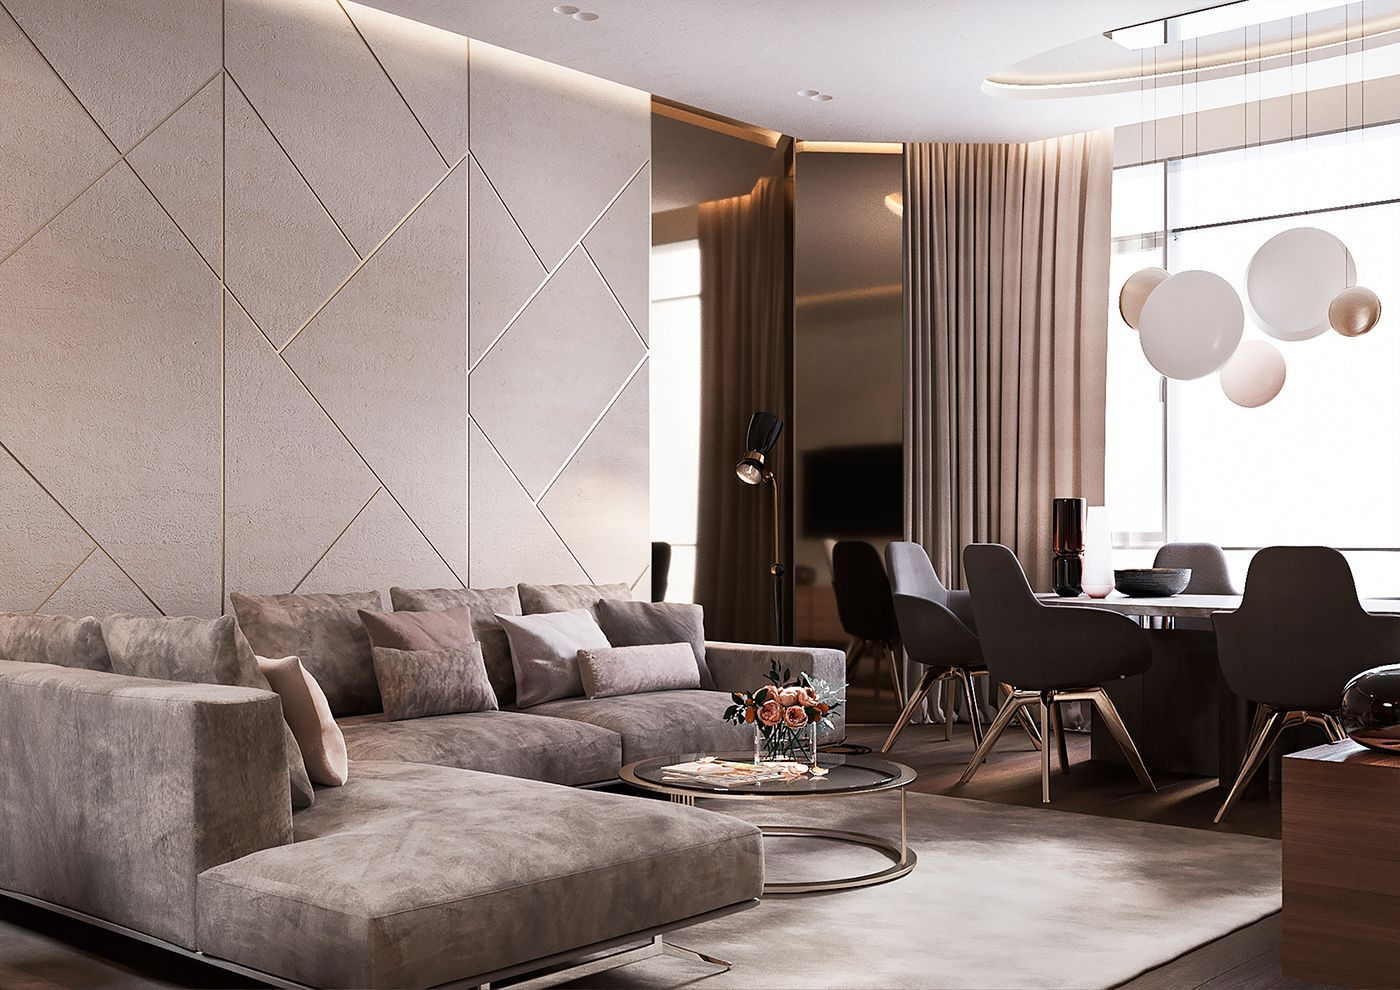 Luxury Apartment Interior Design Ideas With The Right Concept